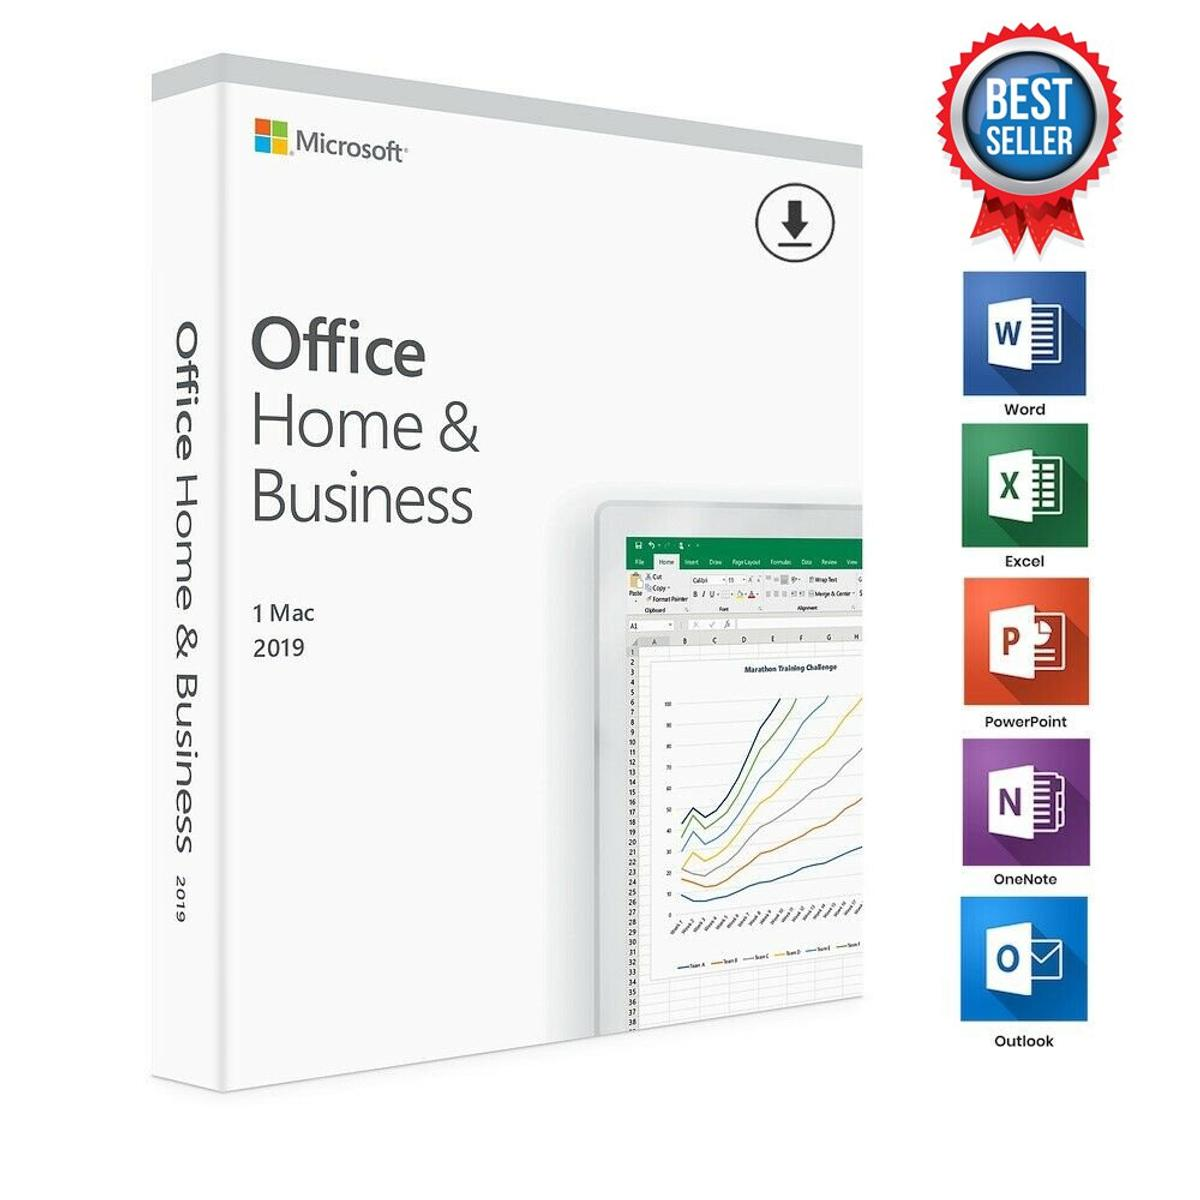 what is the best Microsoft Office Home & Business to buy?